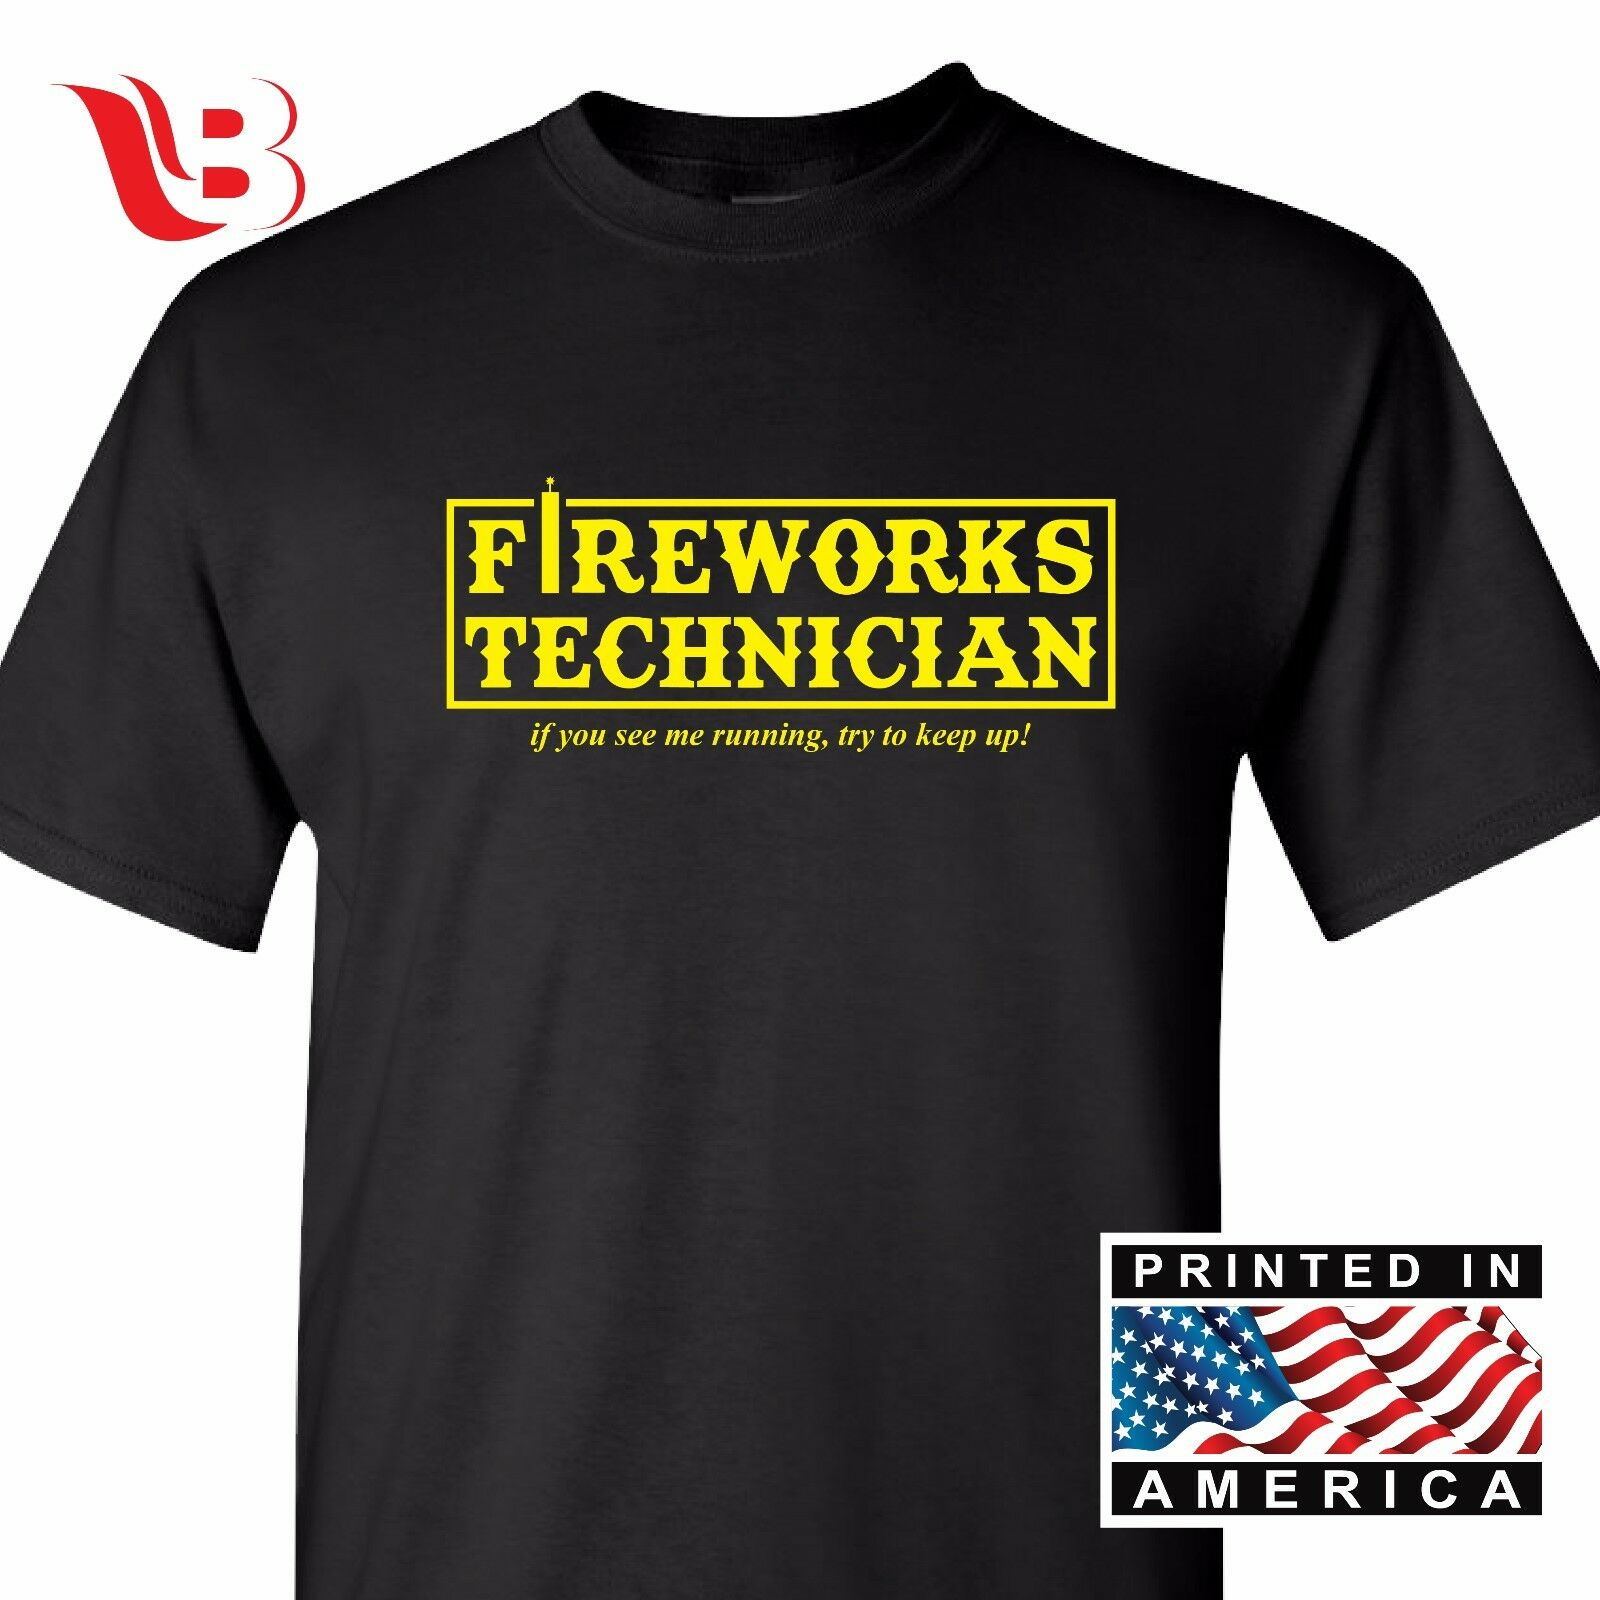 Fireworks Tech T-Shirt - Fourth Of July Fireworks 4th - Great Gift Idea Novelty